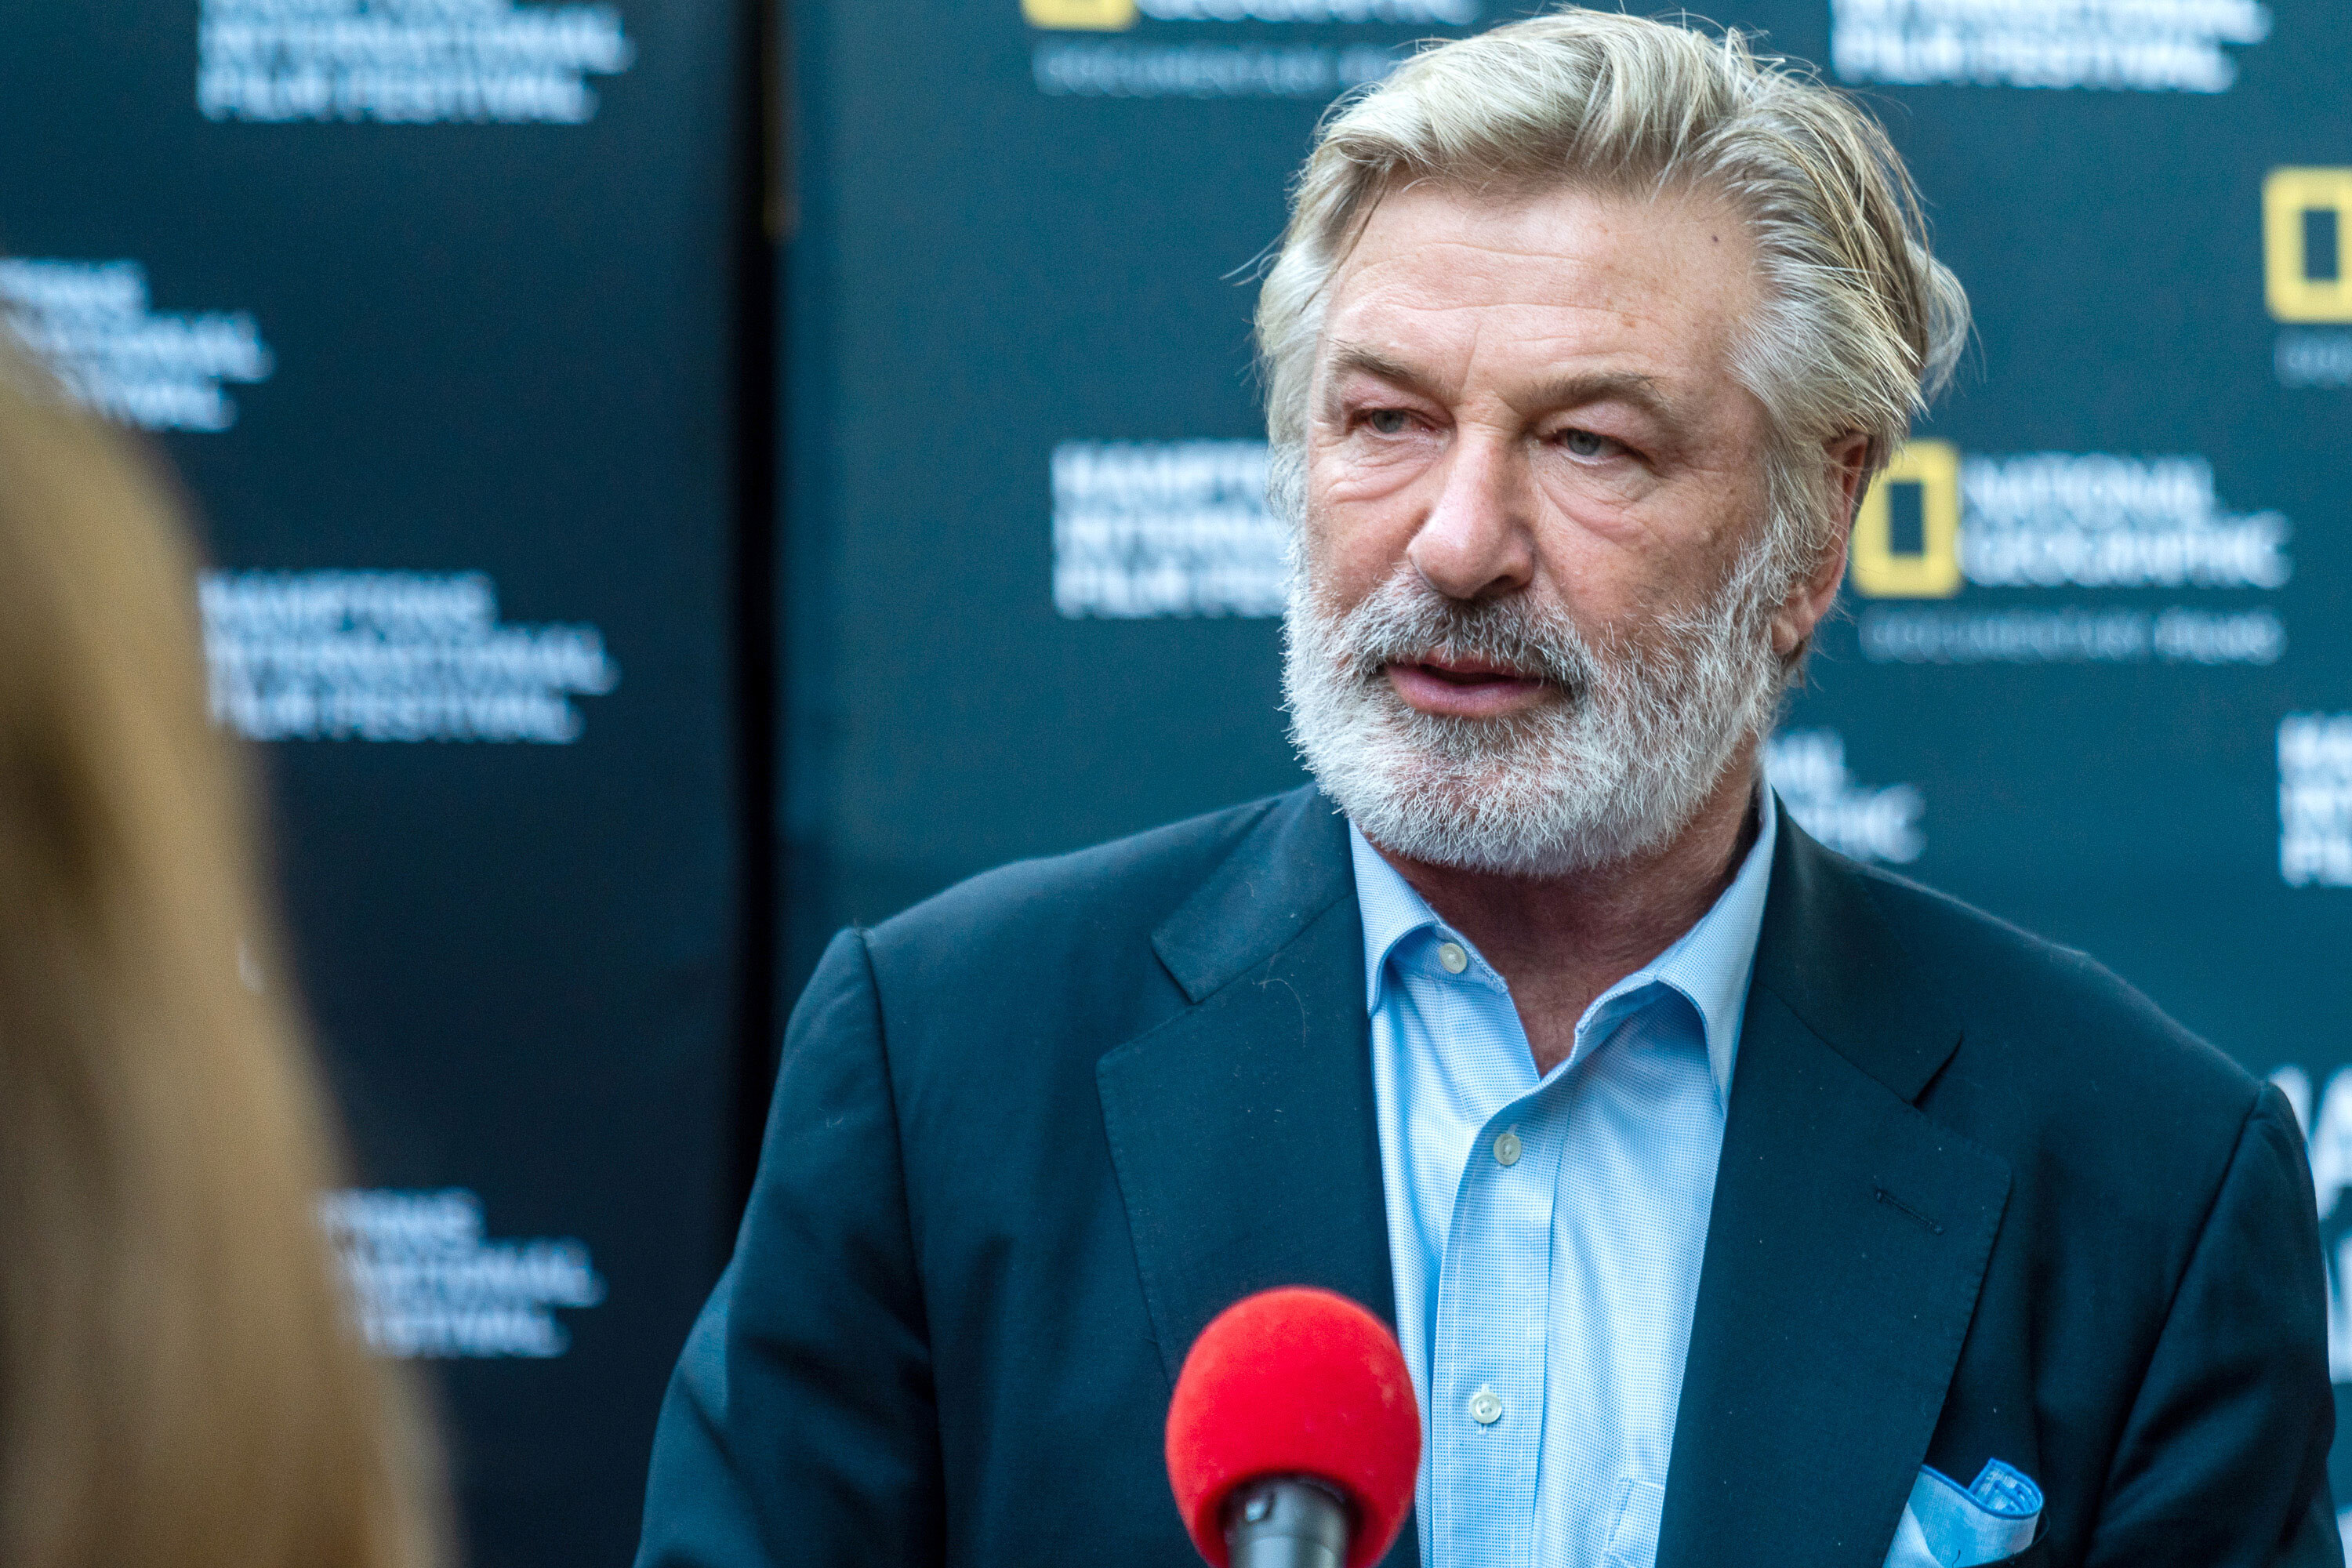 Alec Baldwin says he's 'fully cooperating with police' after fatal shooting on 'Rust' set